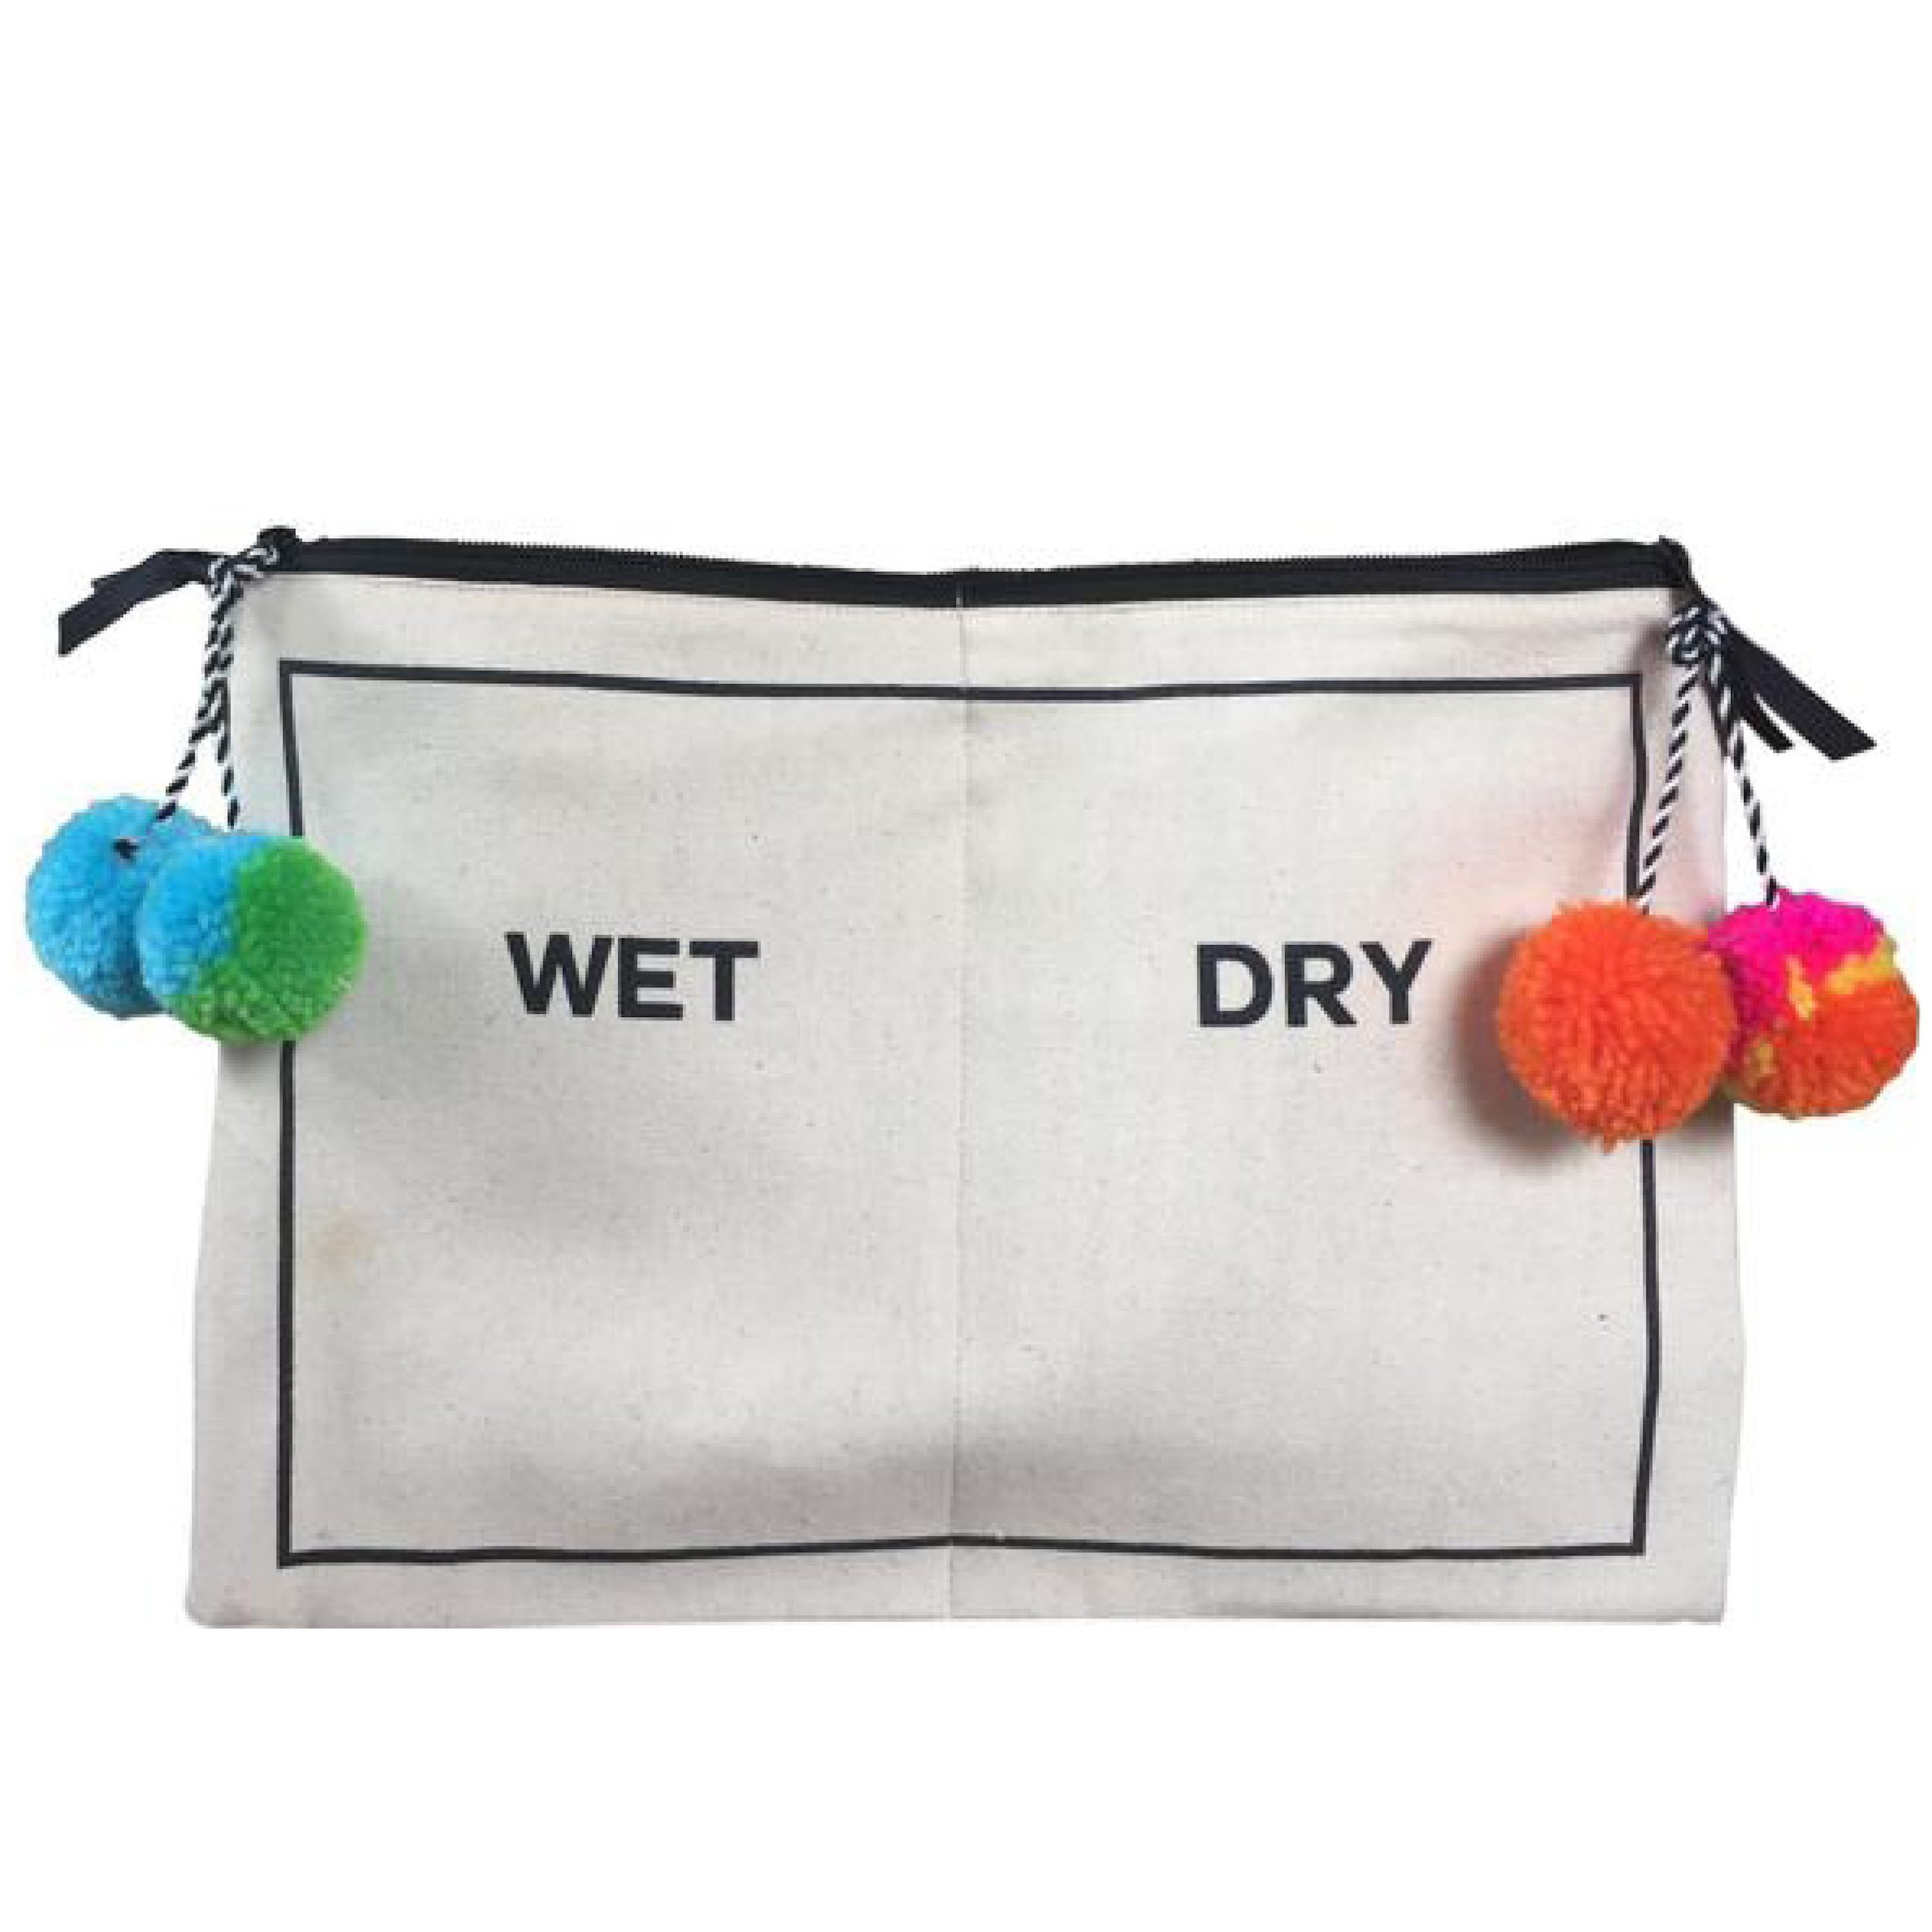 Wet_Dry Pouch Bag-all.jpg